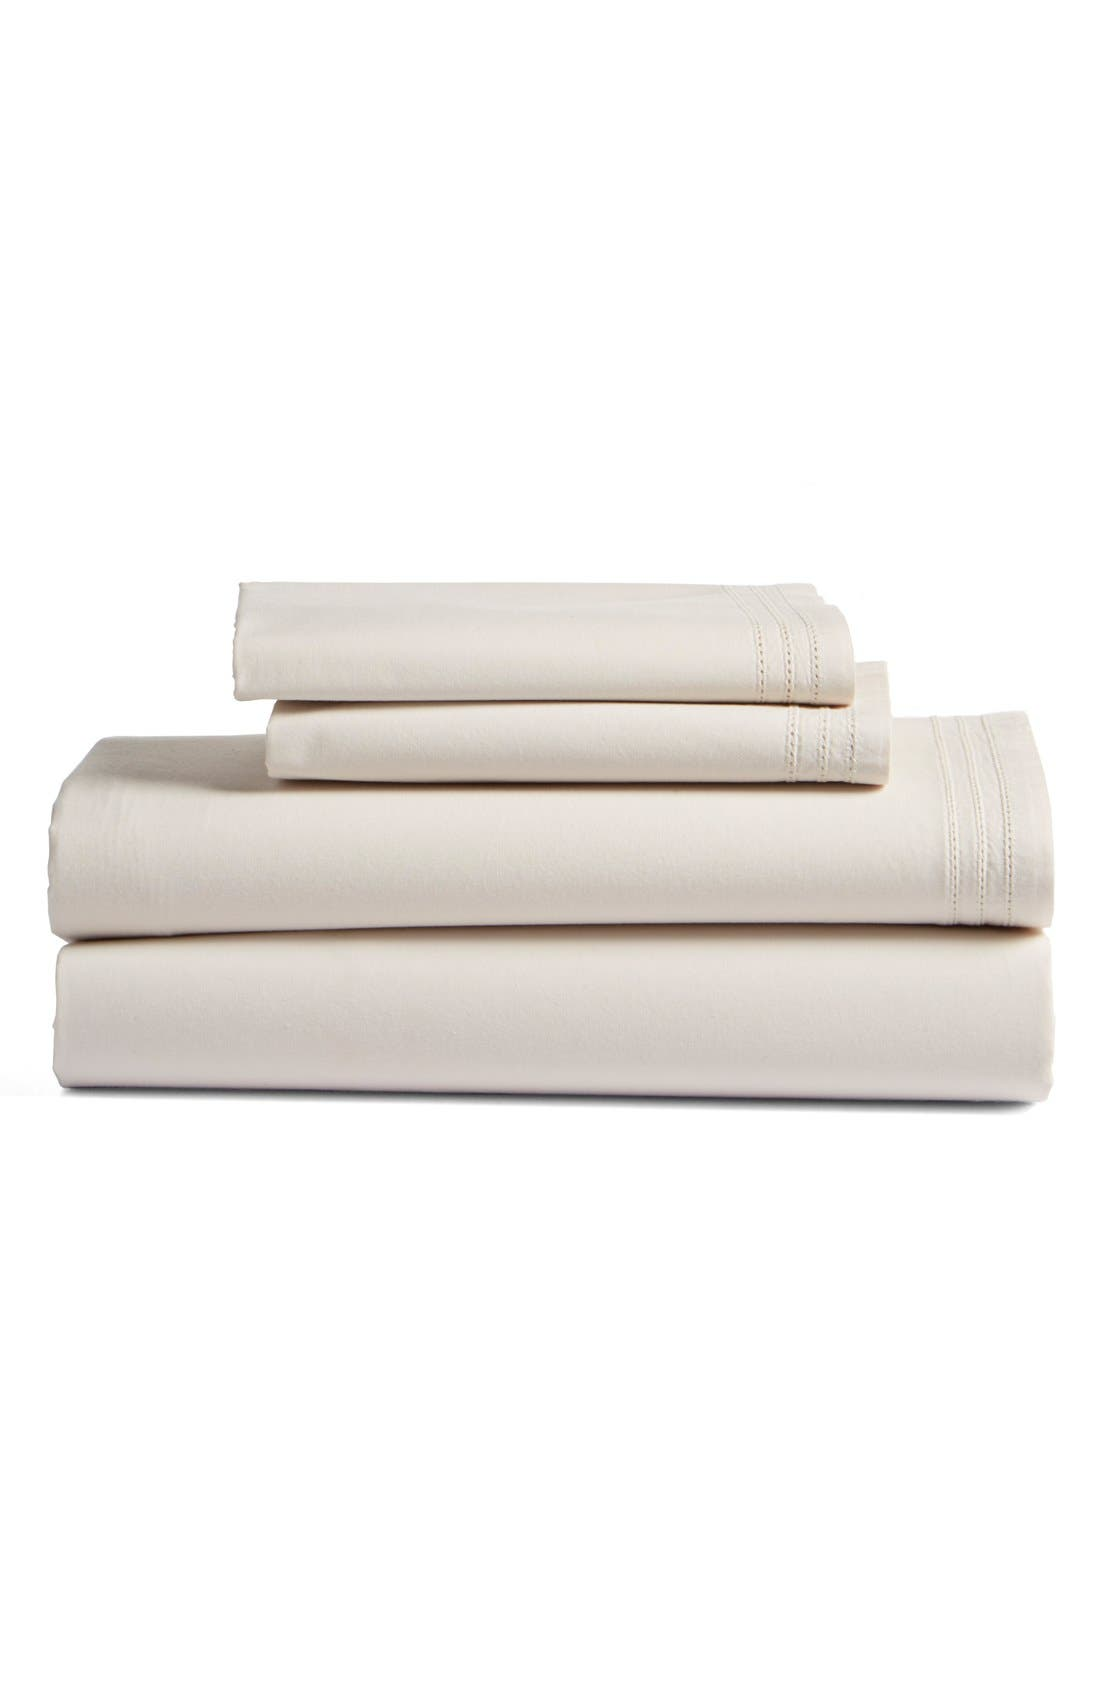 BEEKMAN 1802 'Bellvale' Cotton Percale Fitted Sheet